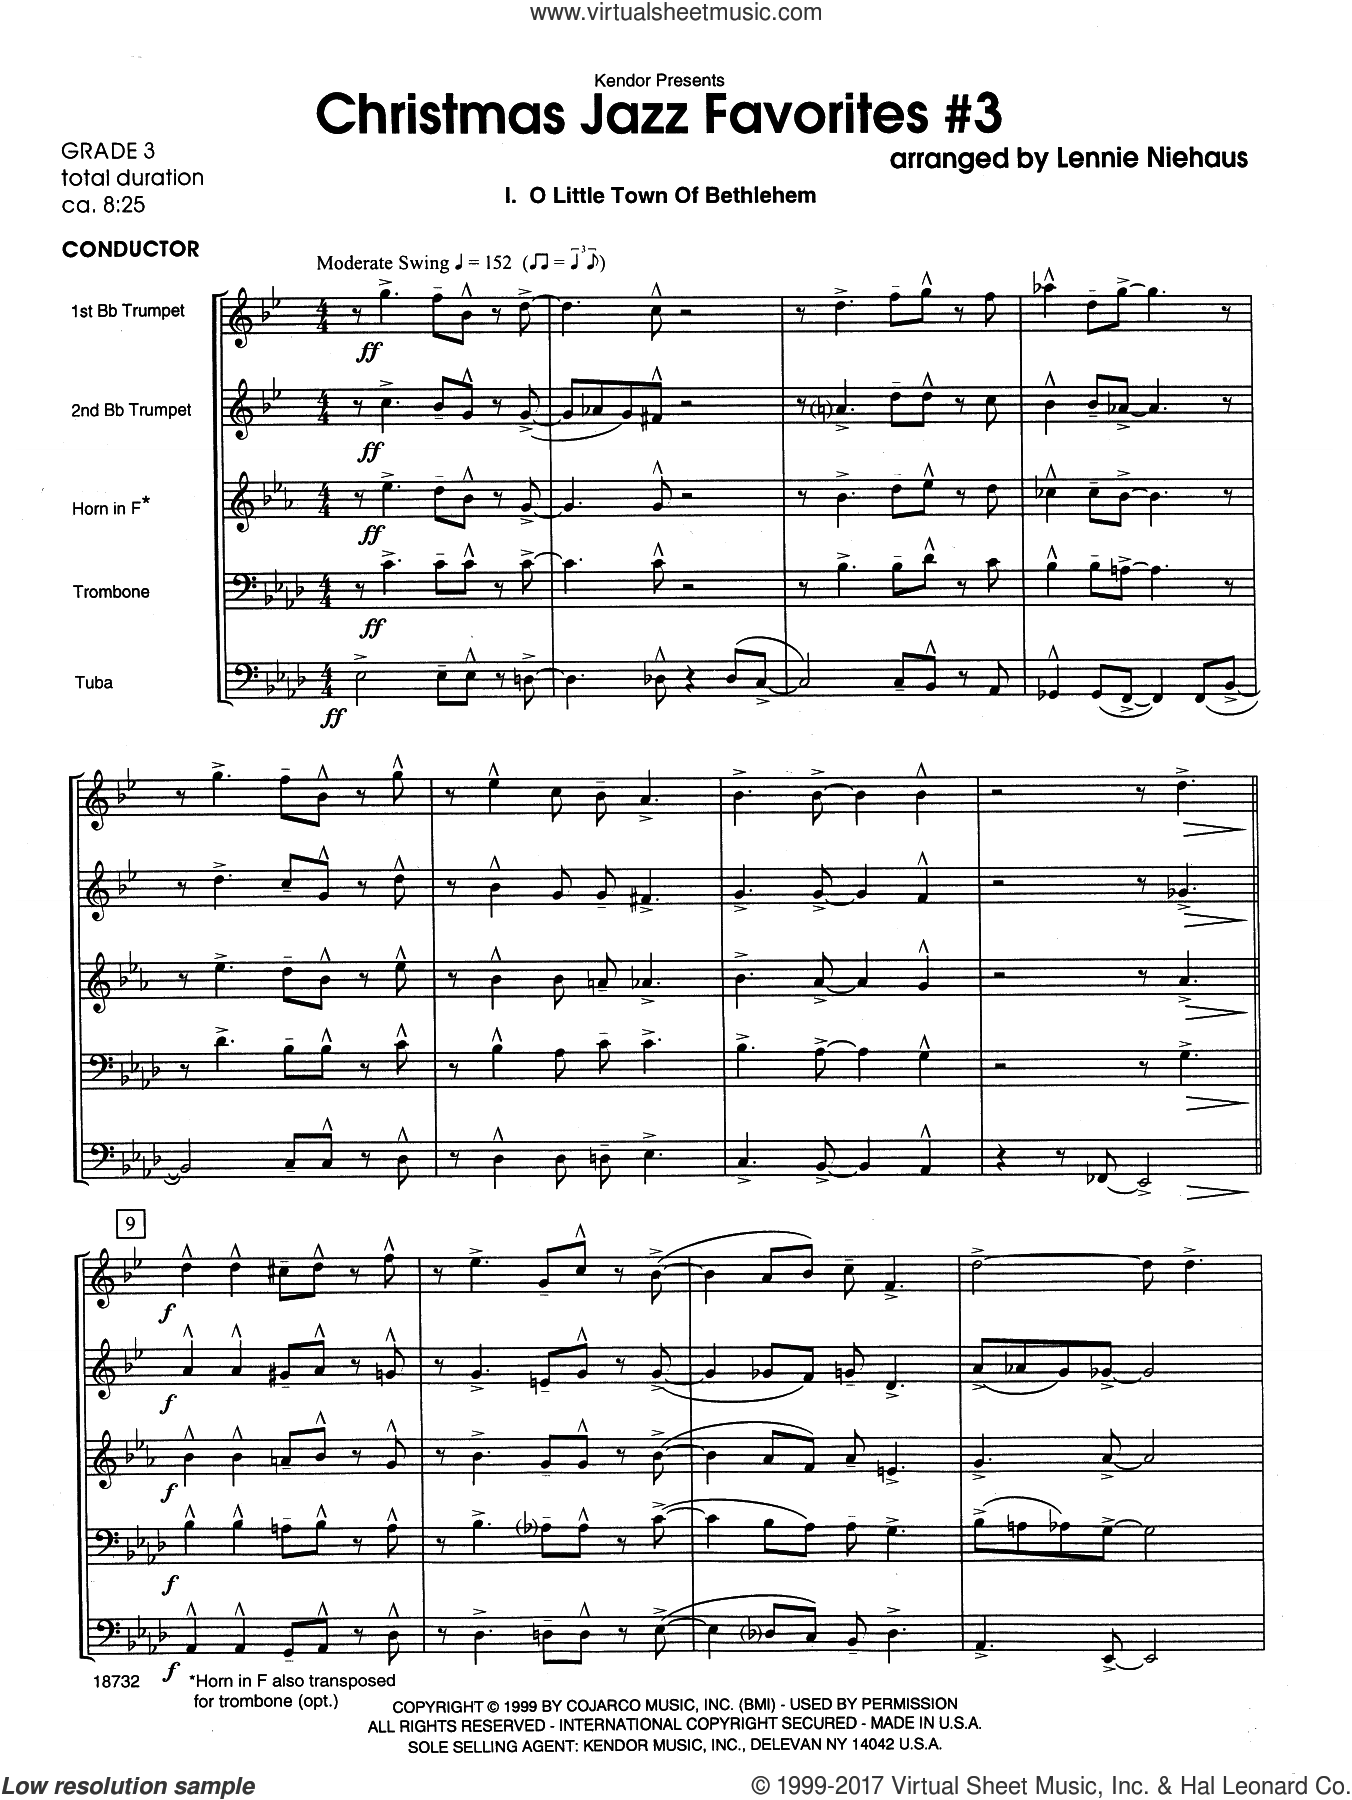 Christmas Jazz Favorites #3 (COMPLETE) sheet music for brass quintet by Lennie Niehaus, intermediate skill level